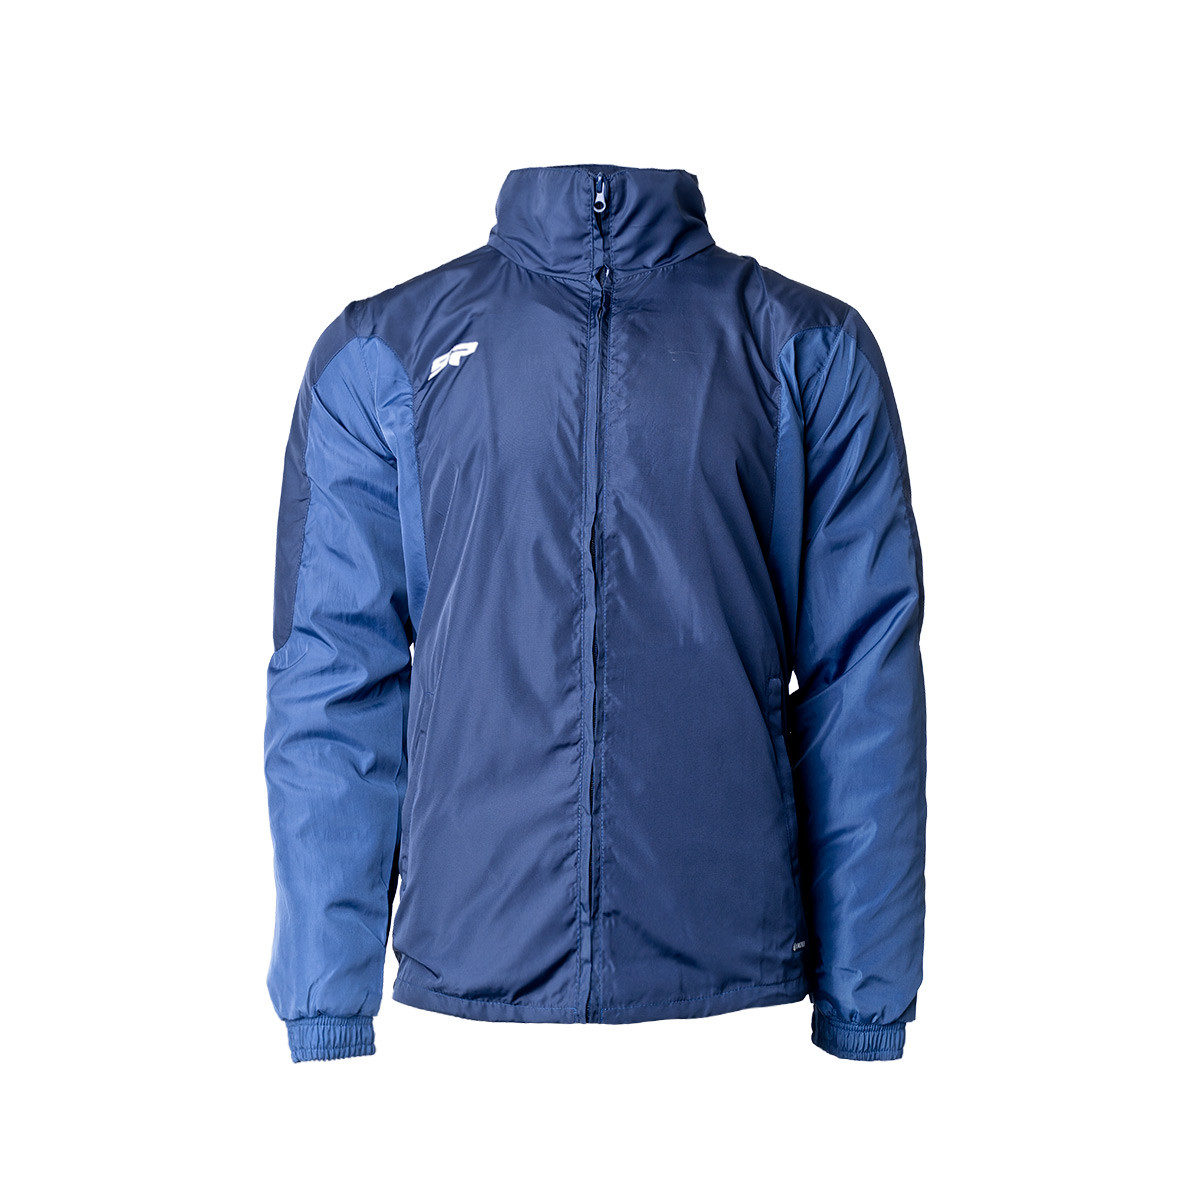 SP Fútbol Caos Raincoat